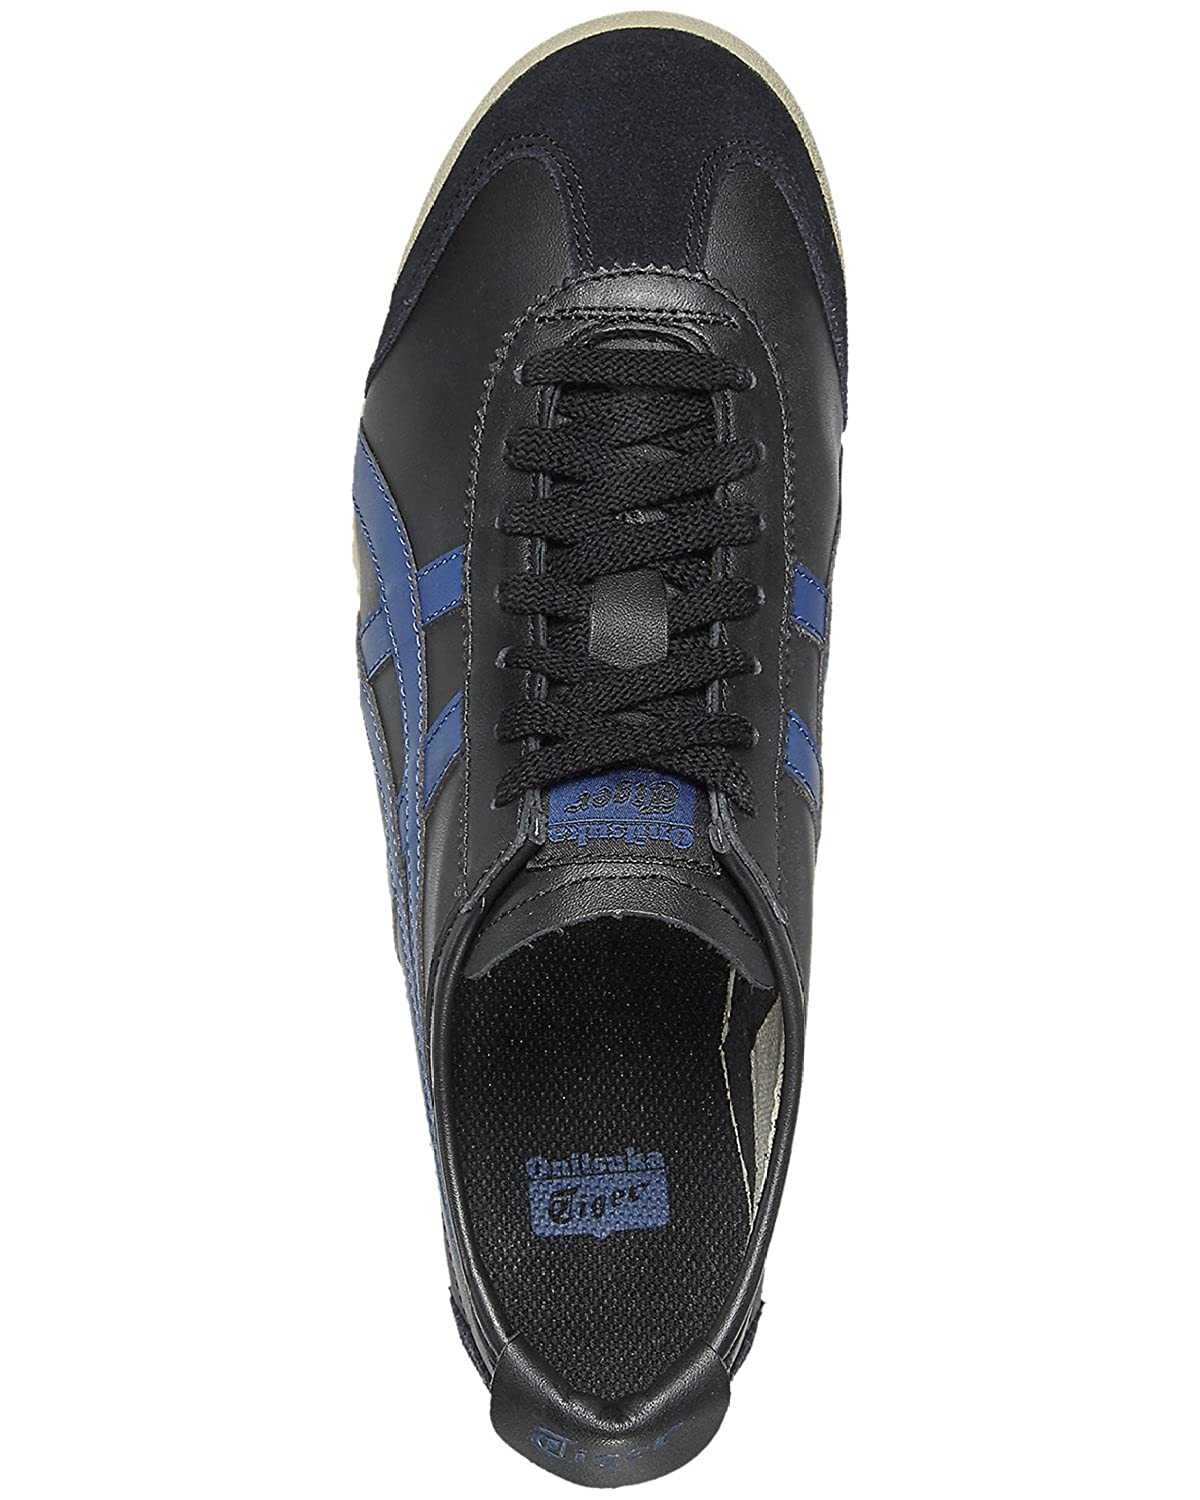 competitive price f315d 75887 Asics Onitsuka Tiger Mexico 66 Schuhe black-poseidon - 40, 5 ...